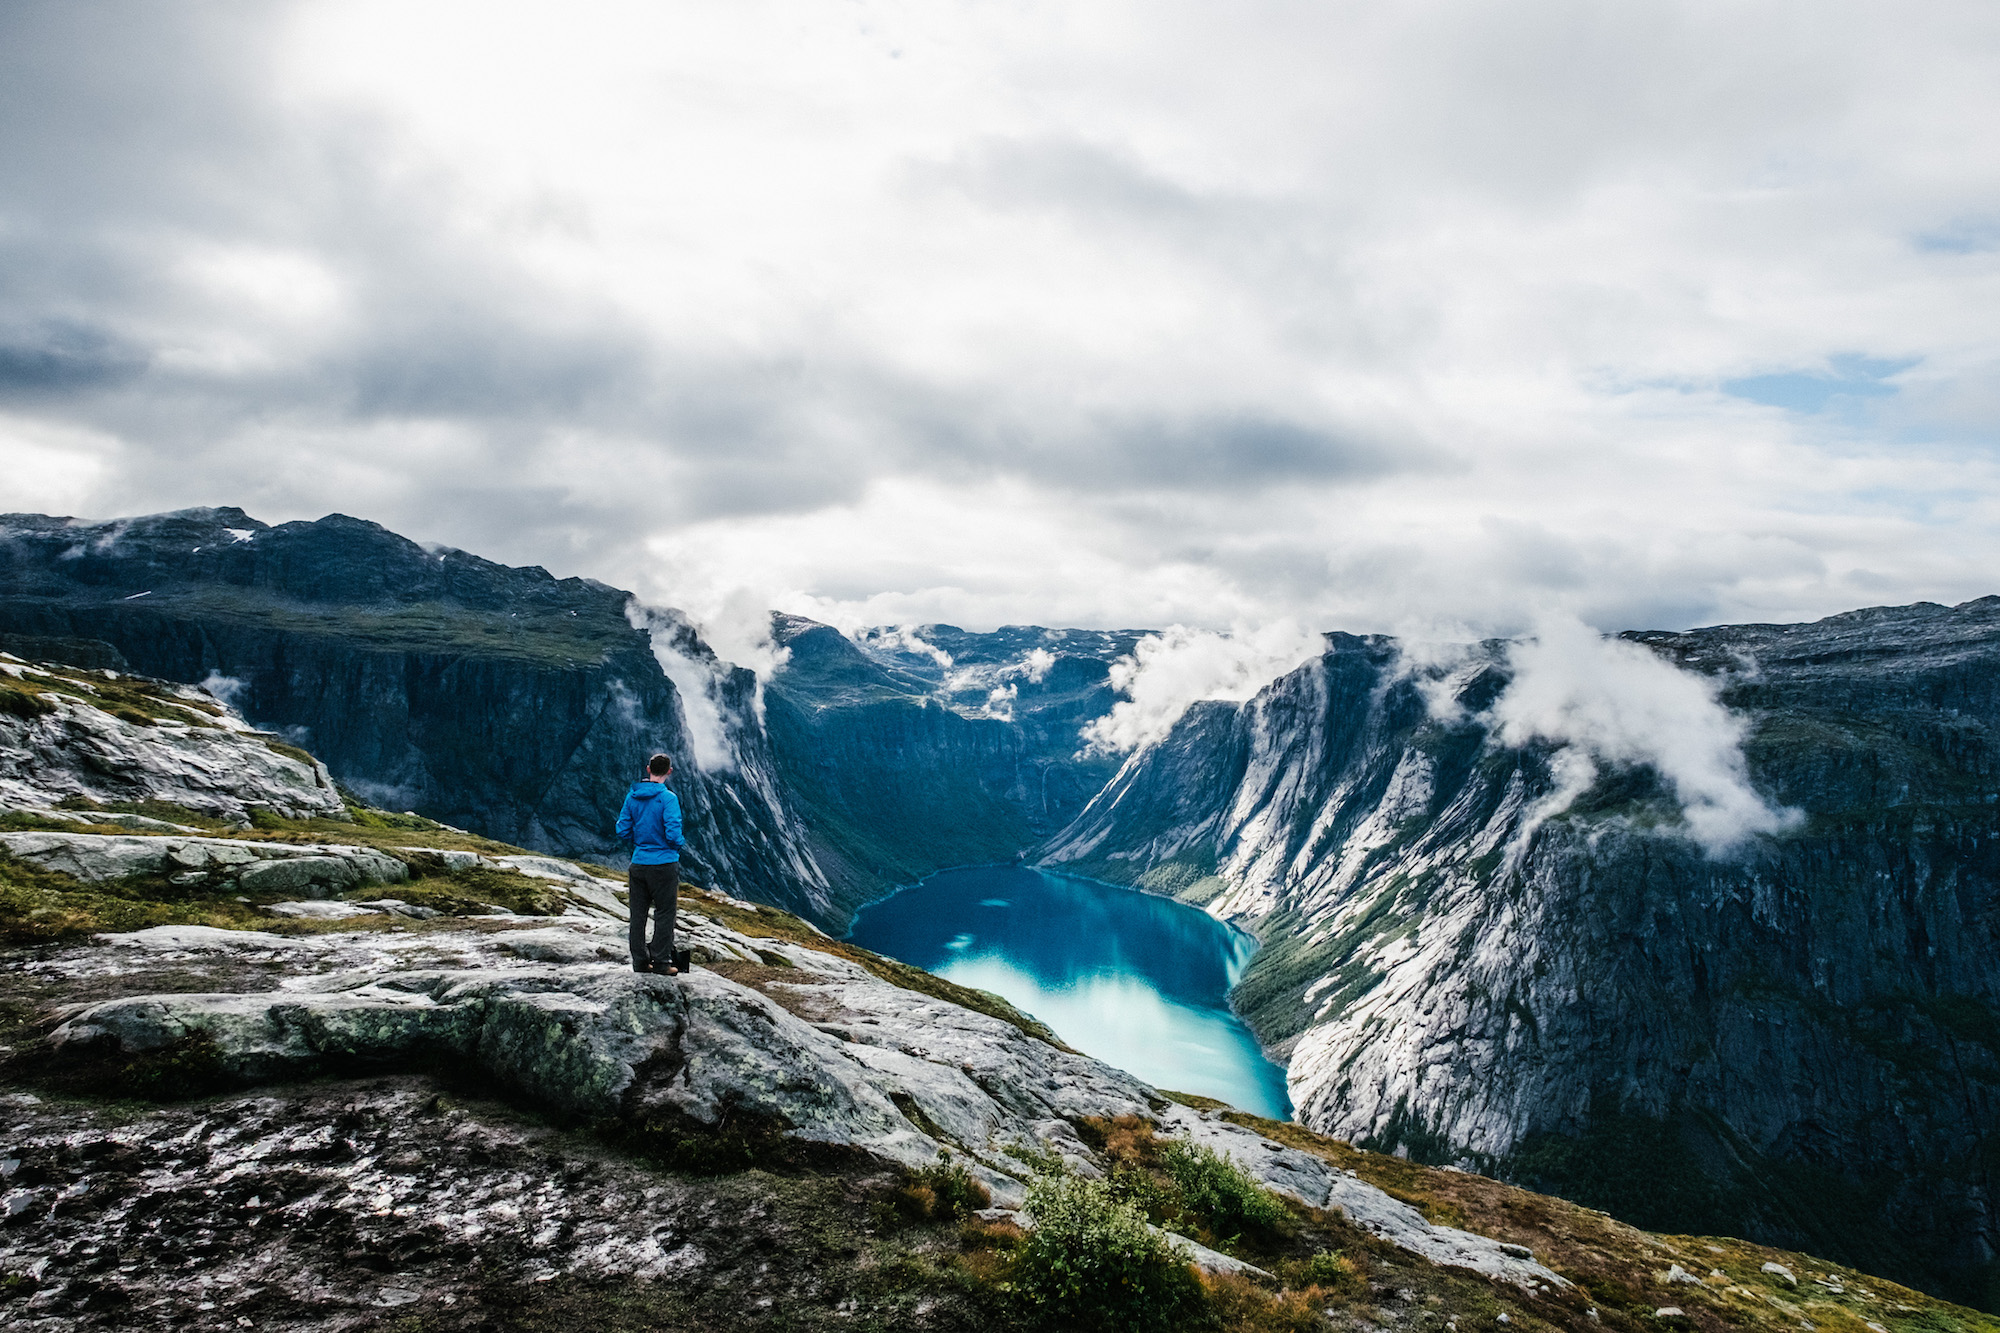 Trolltunga - This 10 hour long hike was the main reason we came to Norway in the first place. It was cold, long and, at the start, quite rainy, however every minute of hiking was so worth it, as the area is just so outstandingly beautiful.